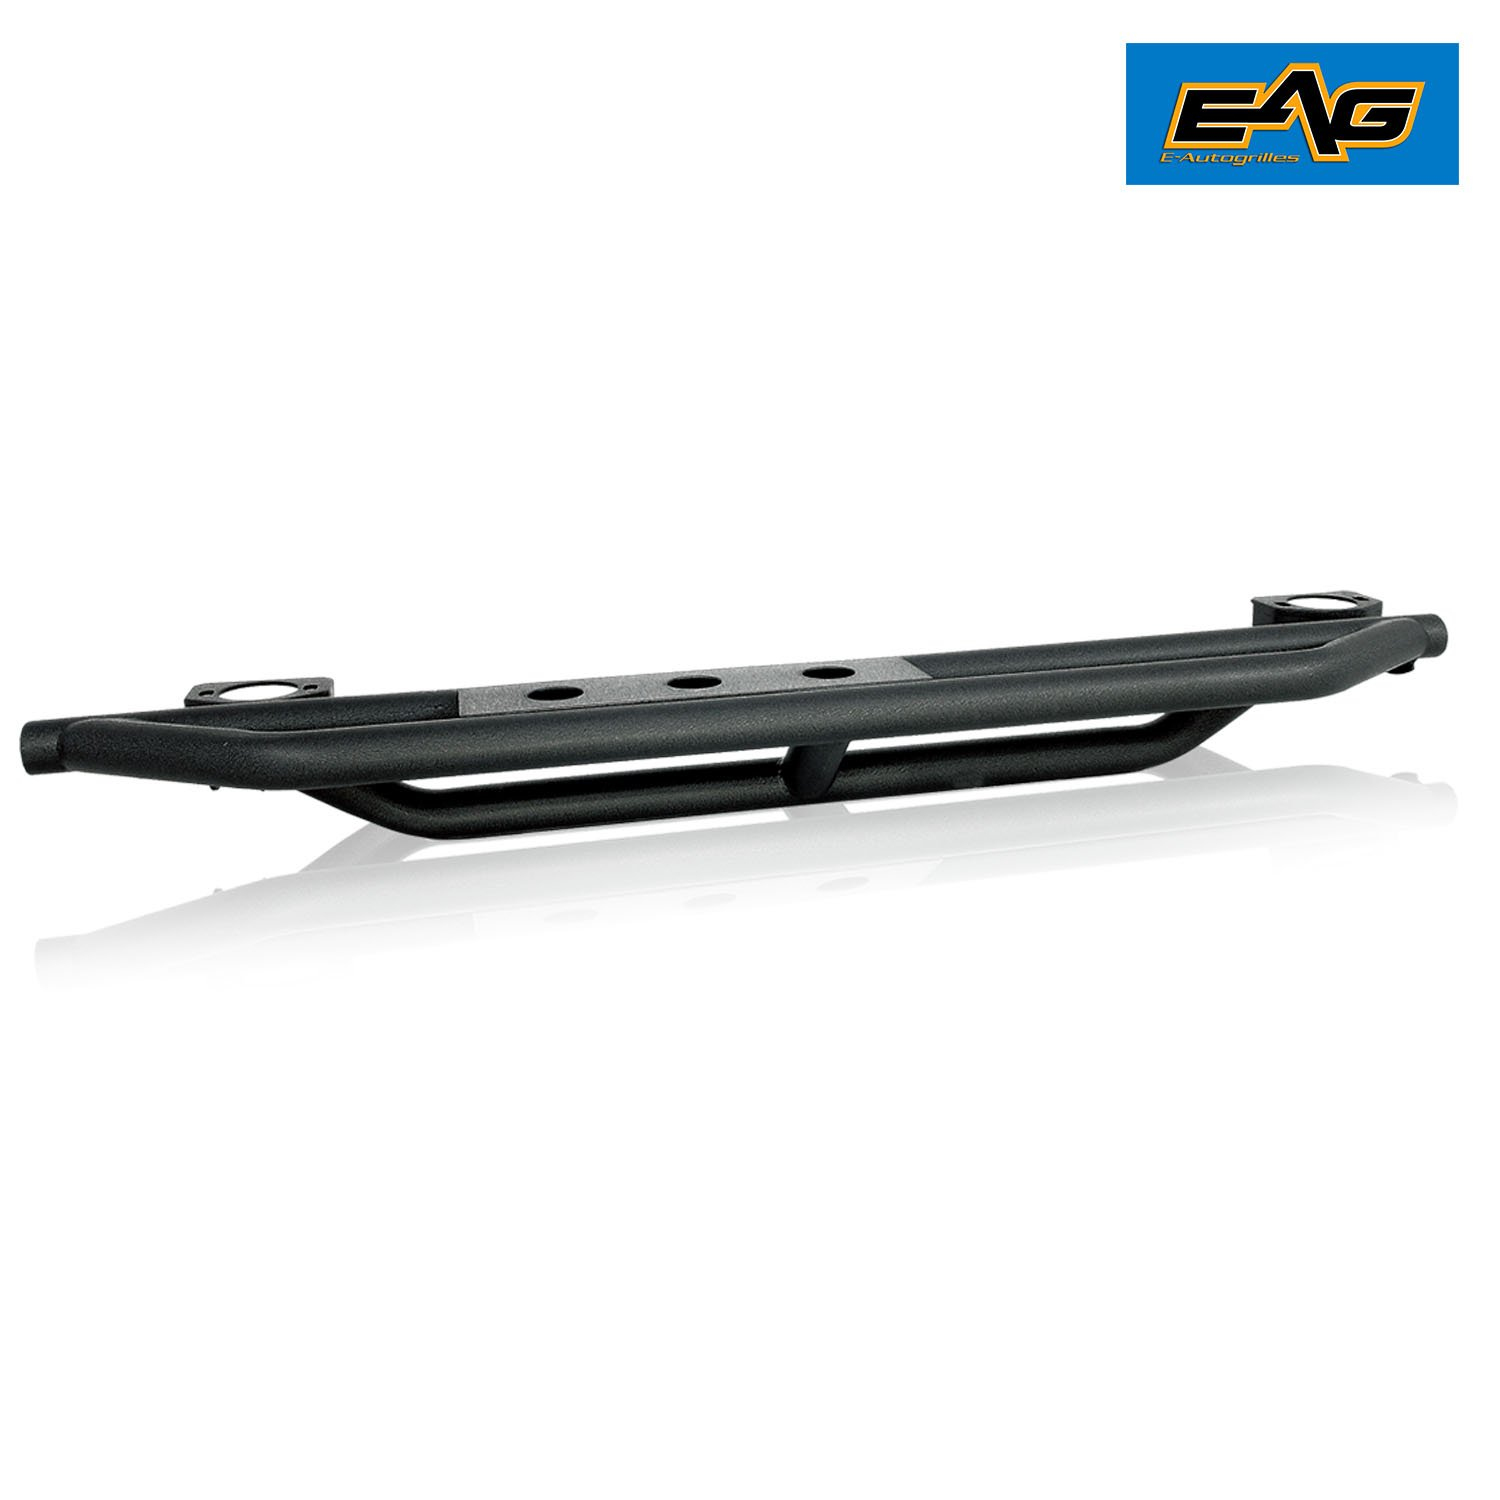 Eag Side Steps Armor For 07 17 Jeep Wrangler Jk 2 Door Rock Sliders Running Boards Nerf Bars Board Rail Step 51 0346 Automotive Tibs